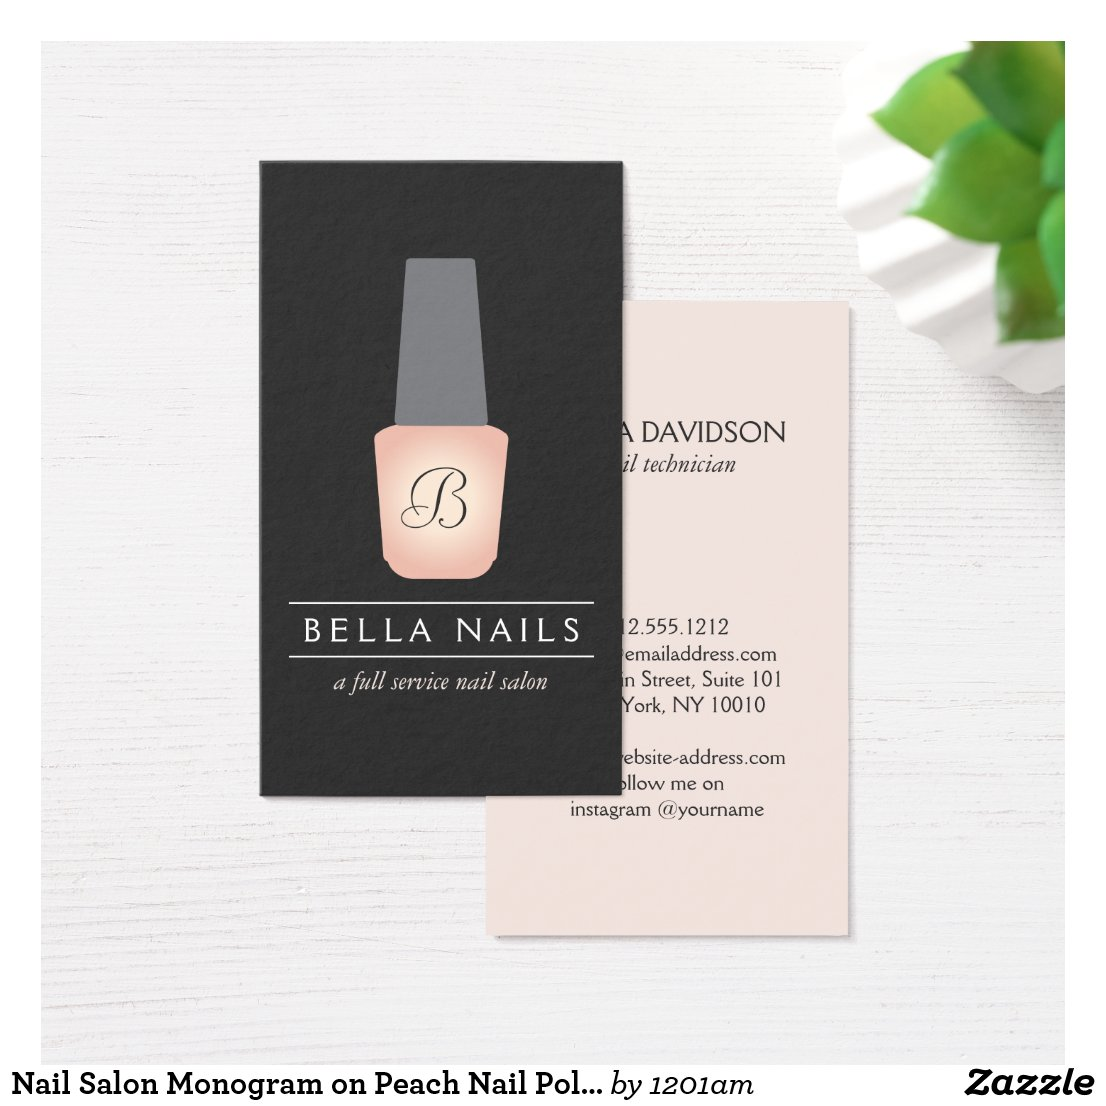 Nail Salon Monogram on Peach Nail Polish Business Card